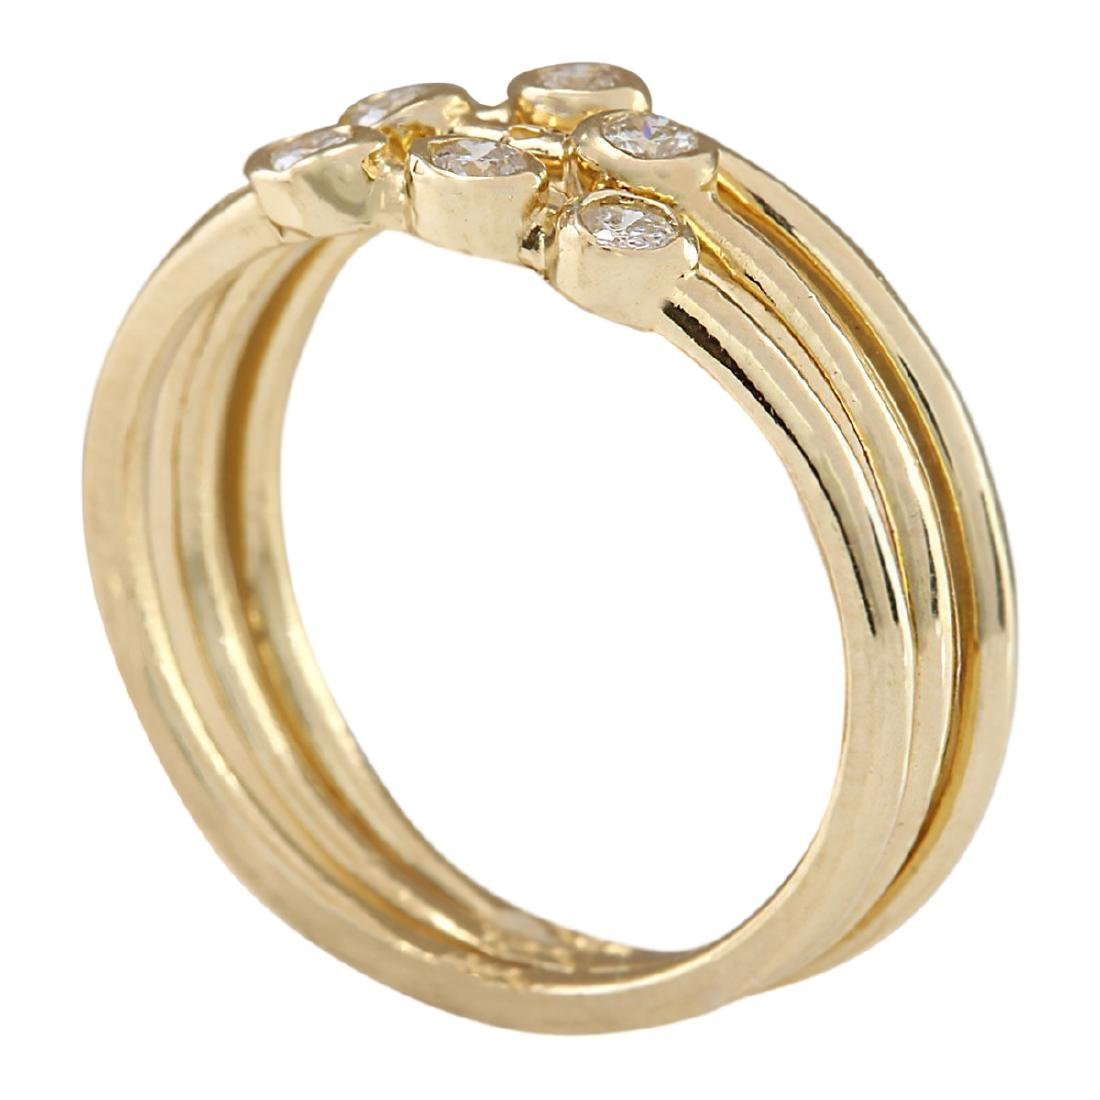 .24 CTW Diamond Ring In 18K Solid Yellow Gold - 3